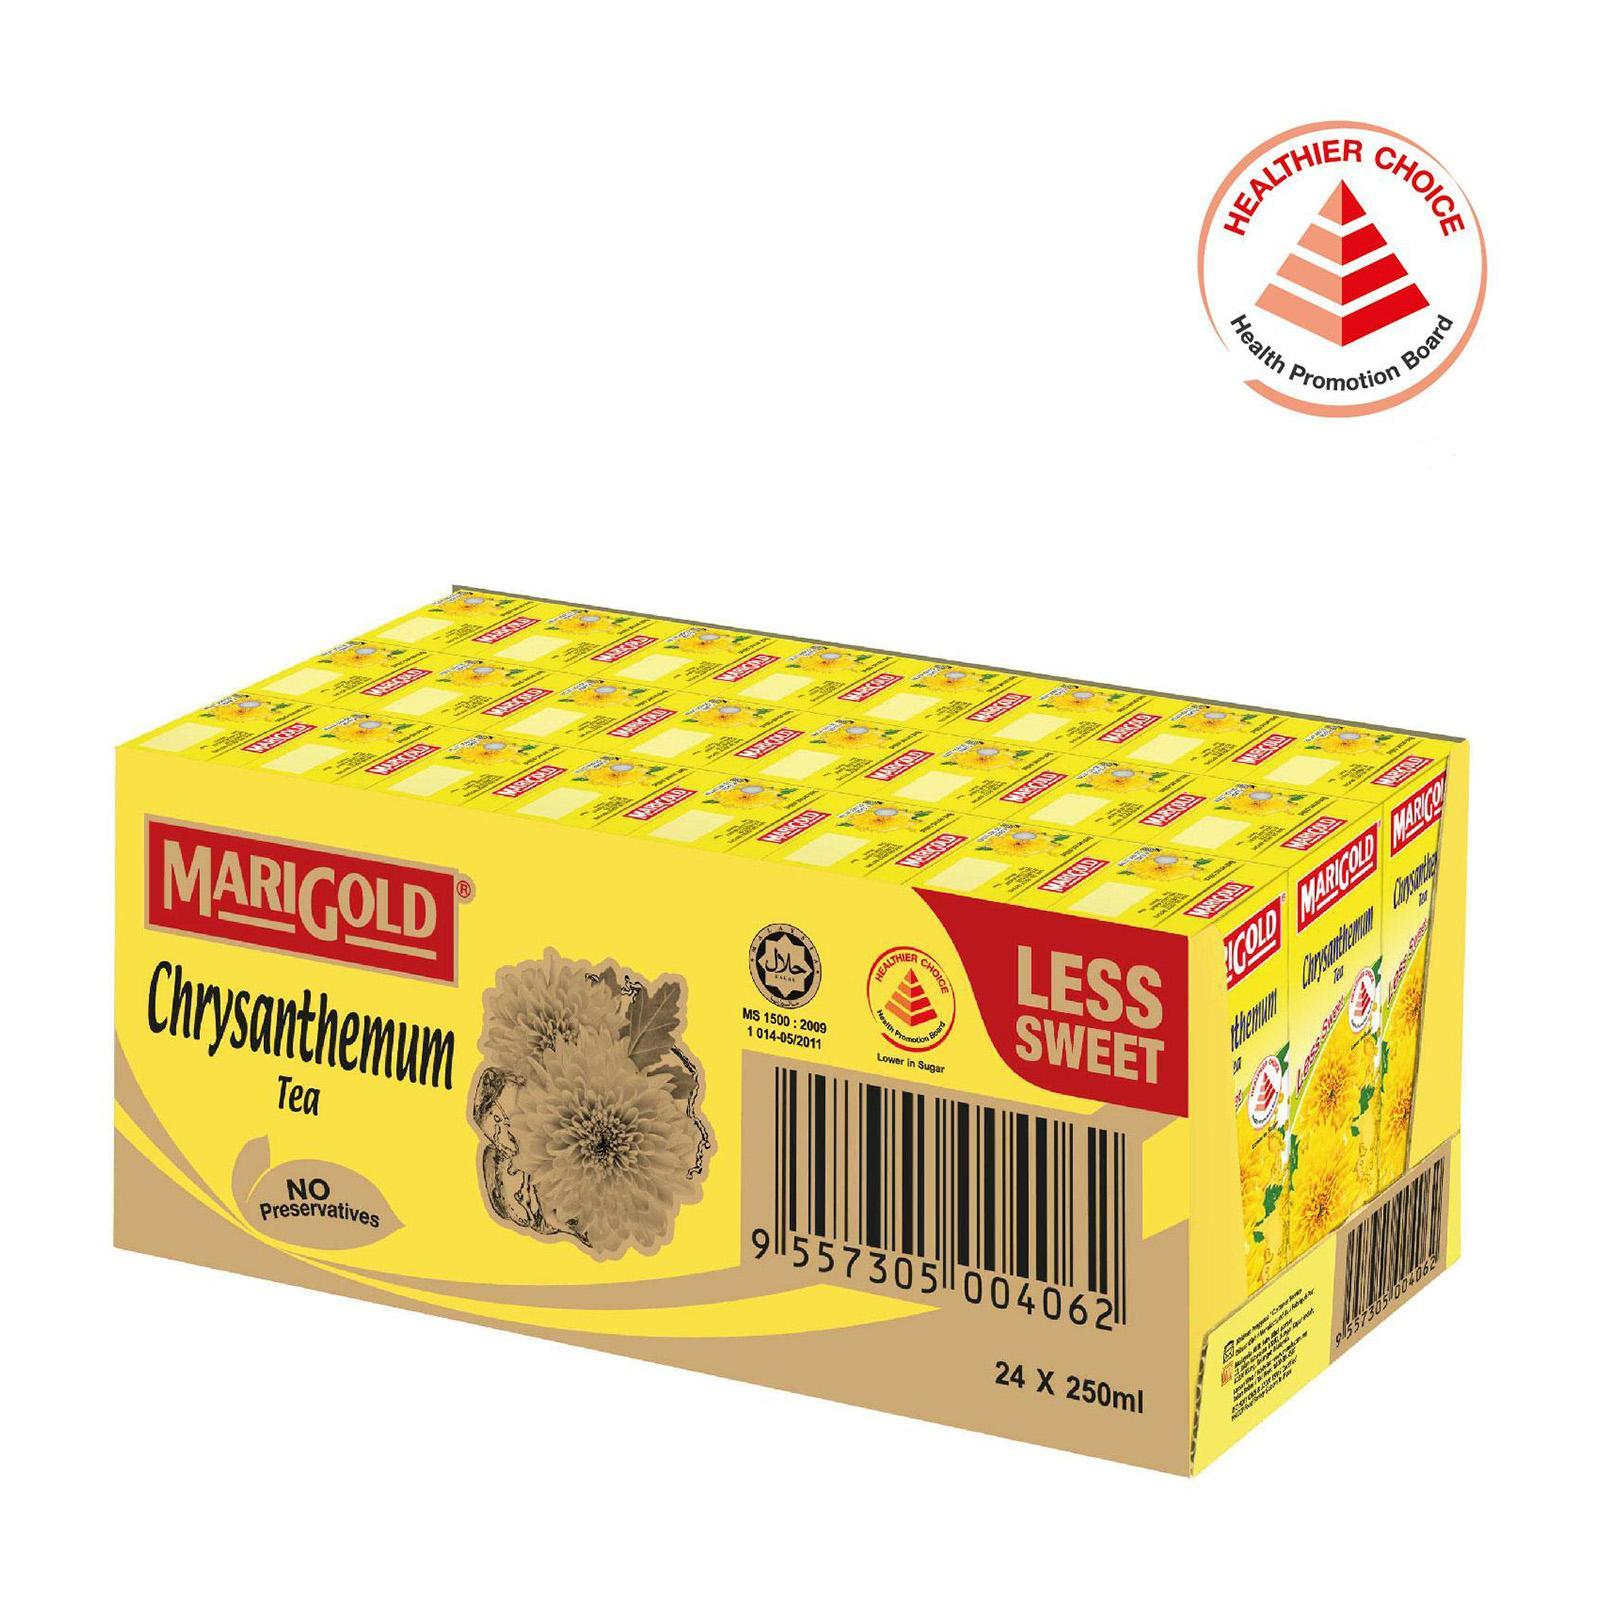 MARIGOLD Less Sweet Chrysanthemum Tea Packet Drink - Case